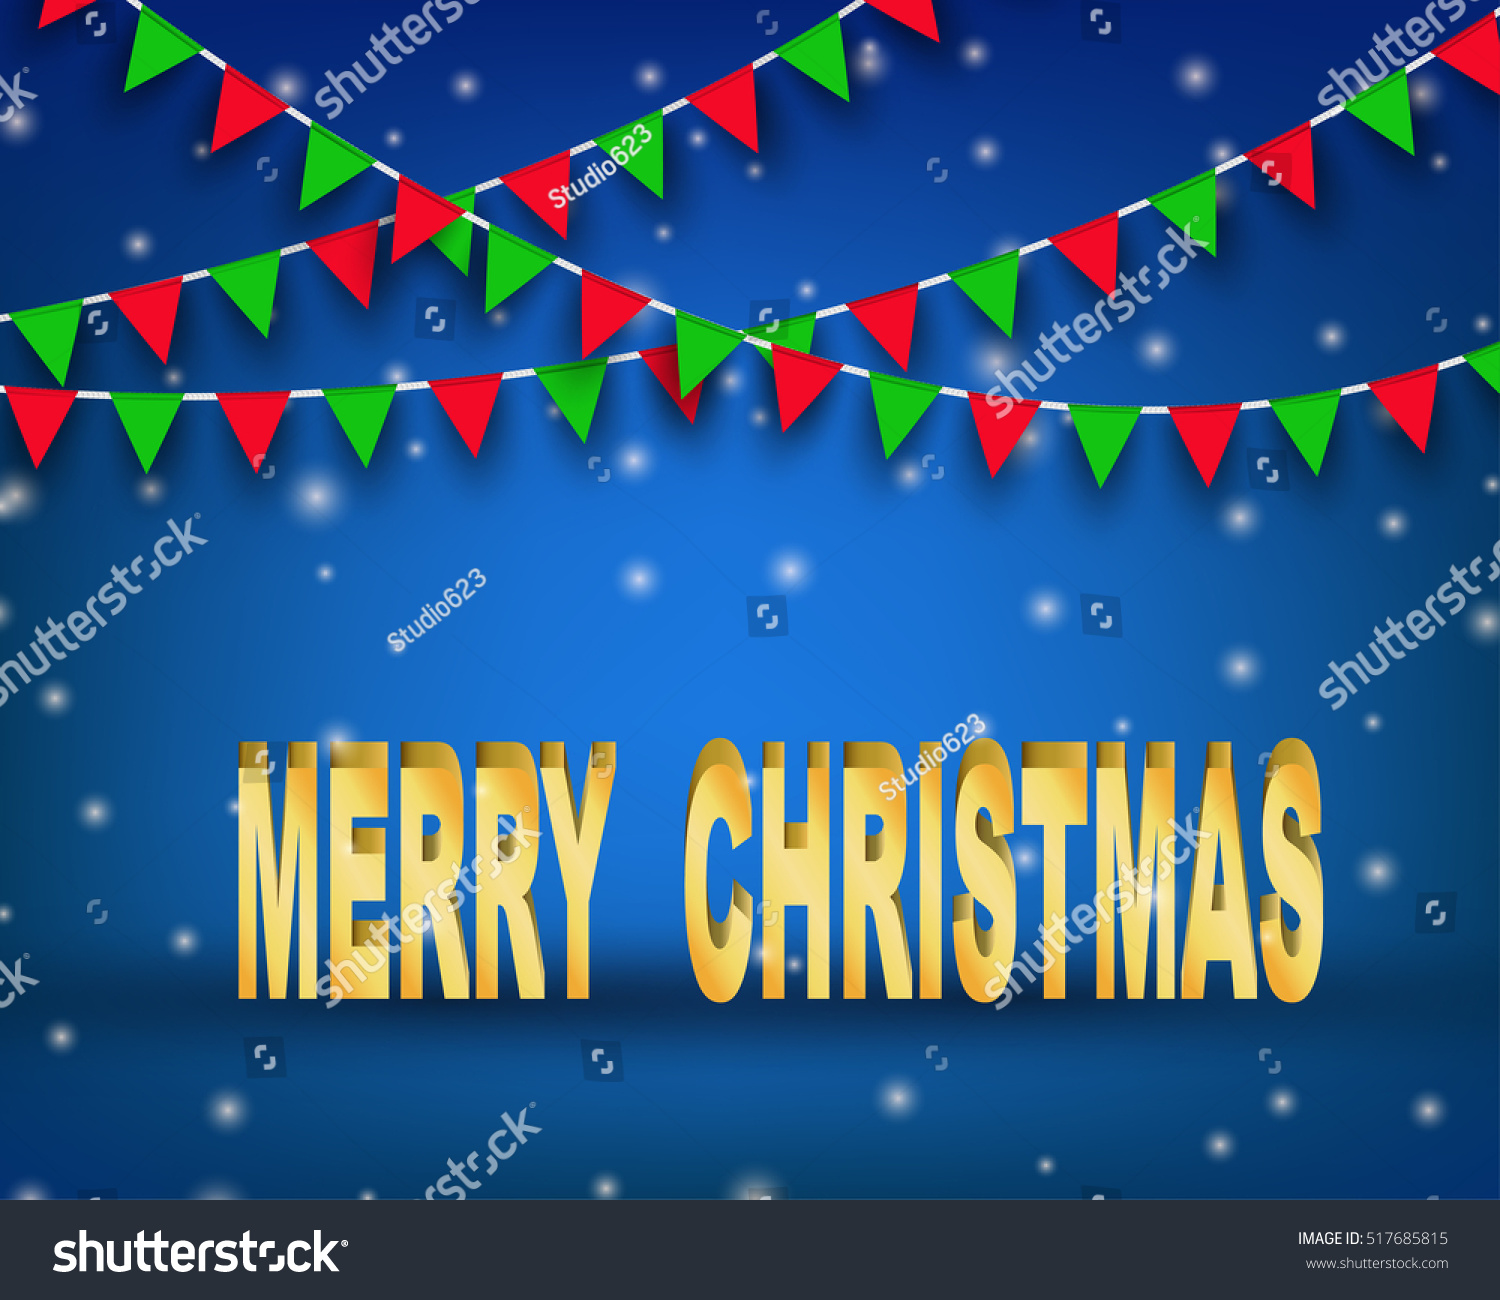 Merry christmas wording bunting flag concept stock vector royalty merry christmas wording with bunting flag concept design for greeting card banner poster m4hsunfo